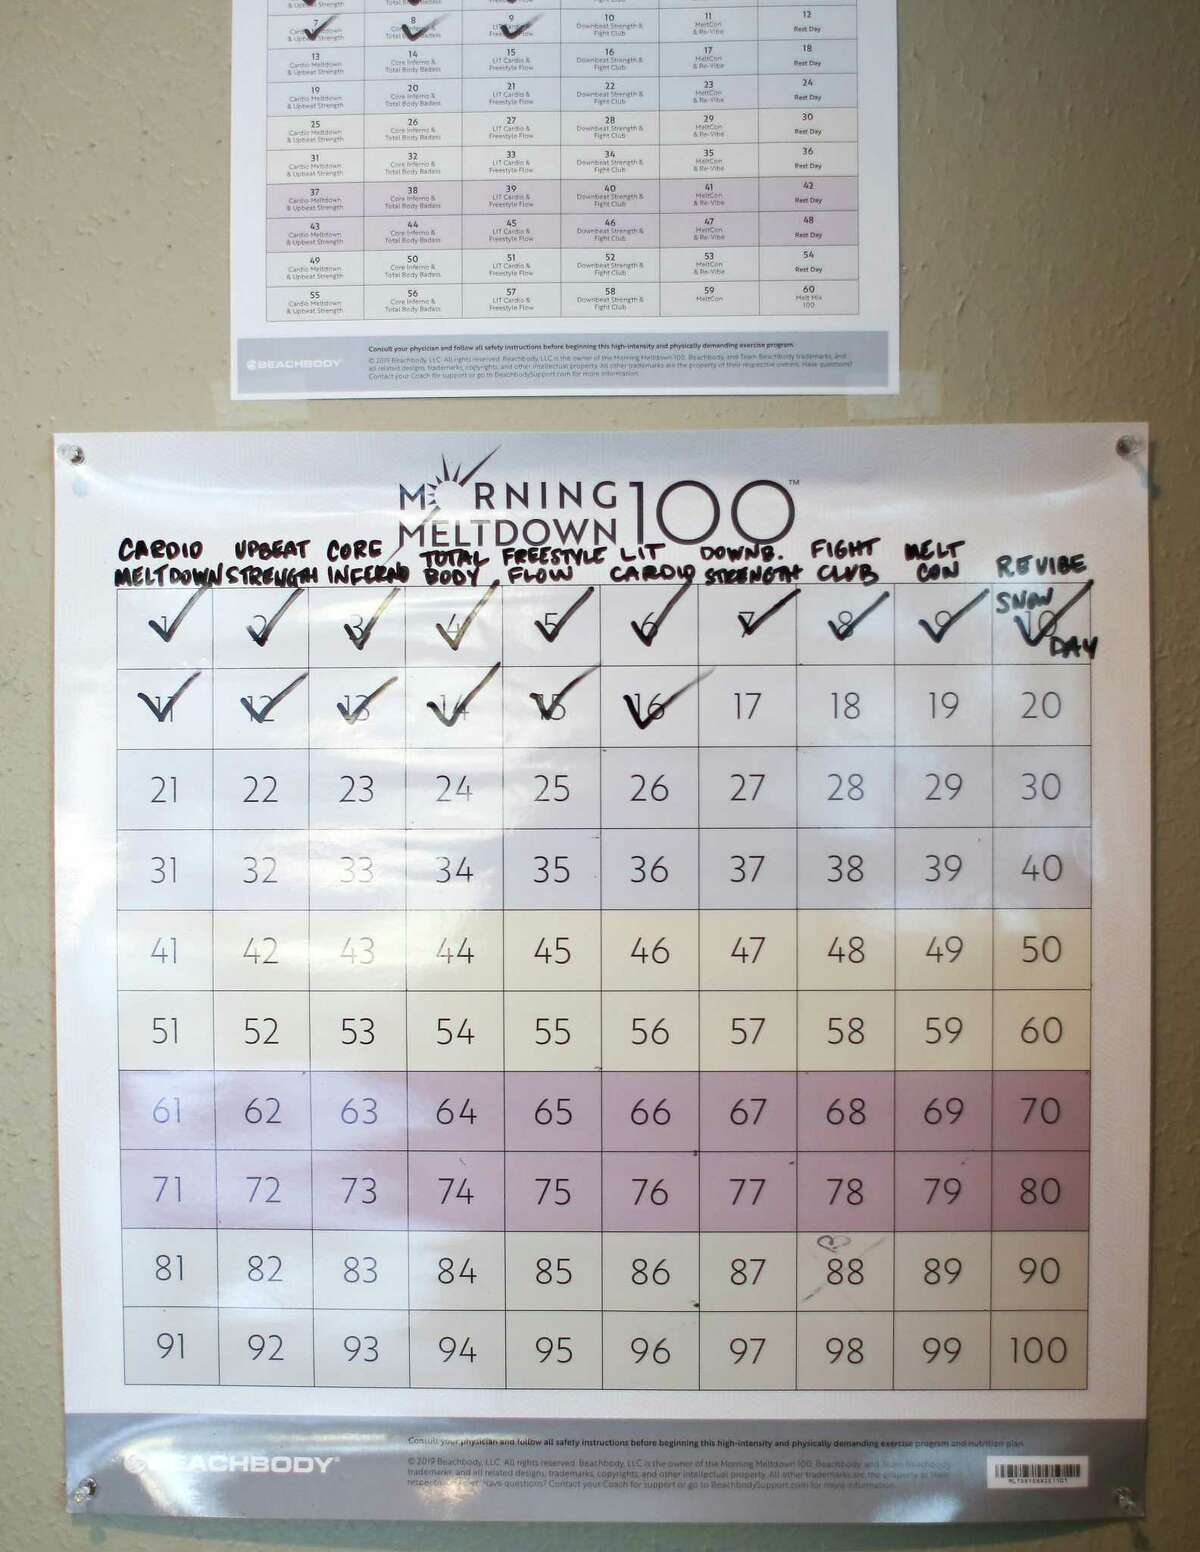 A tracker helps the Smiths tick off their workouts for a 100-day challenge.